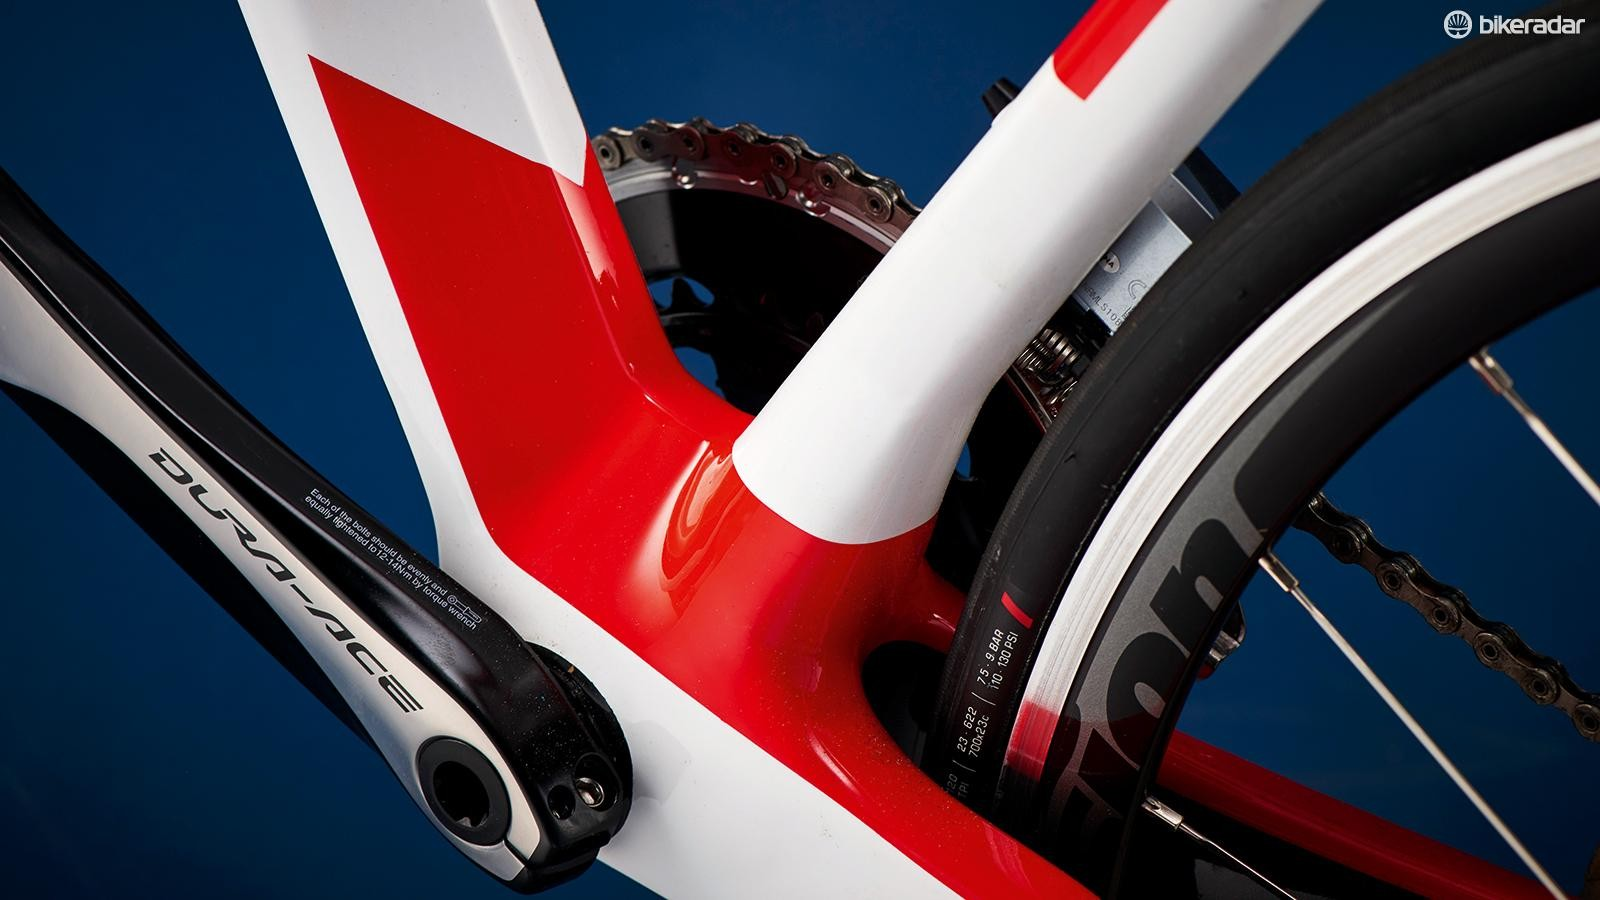 The Orca's beefy bottom bracket shell flares out to huge squared off chainstays